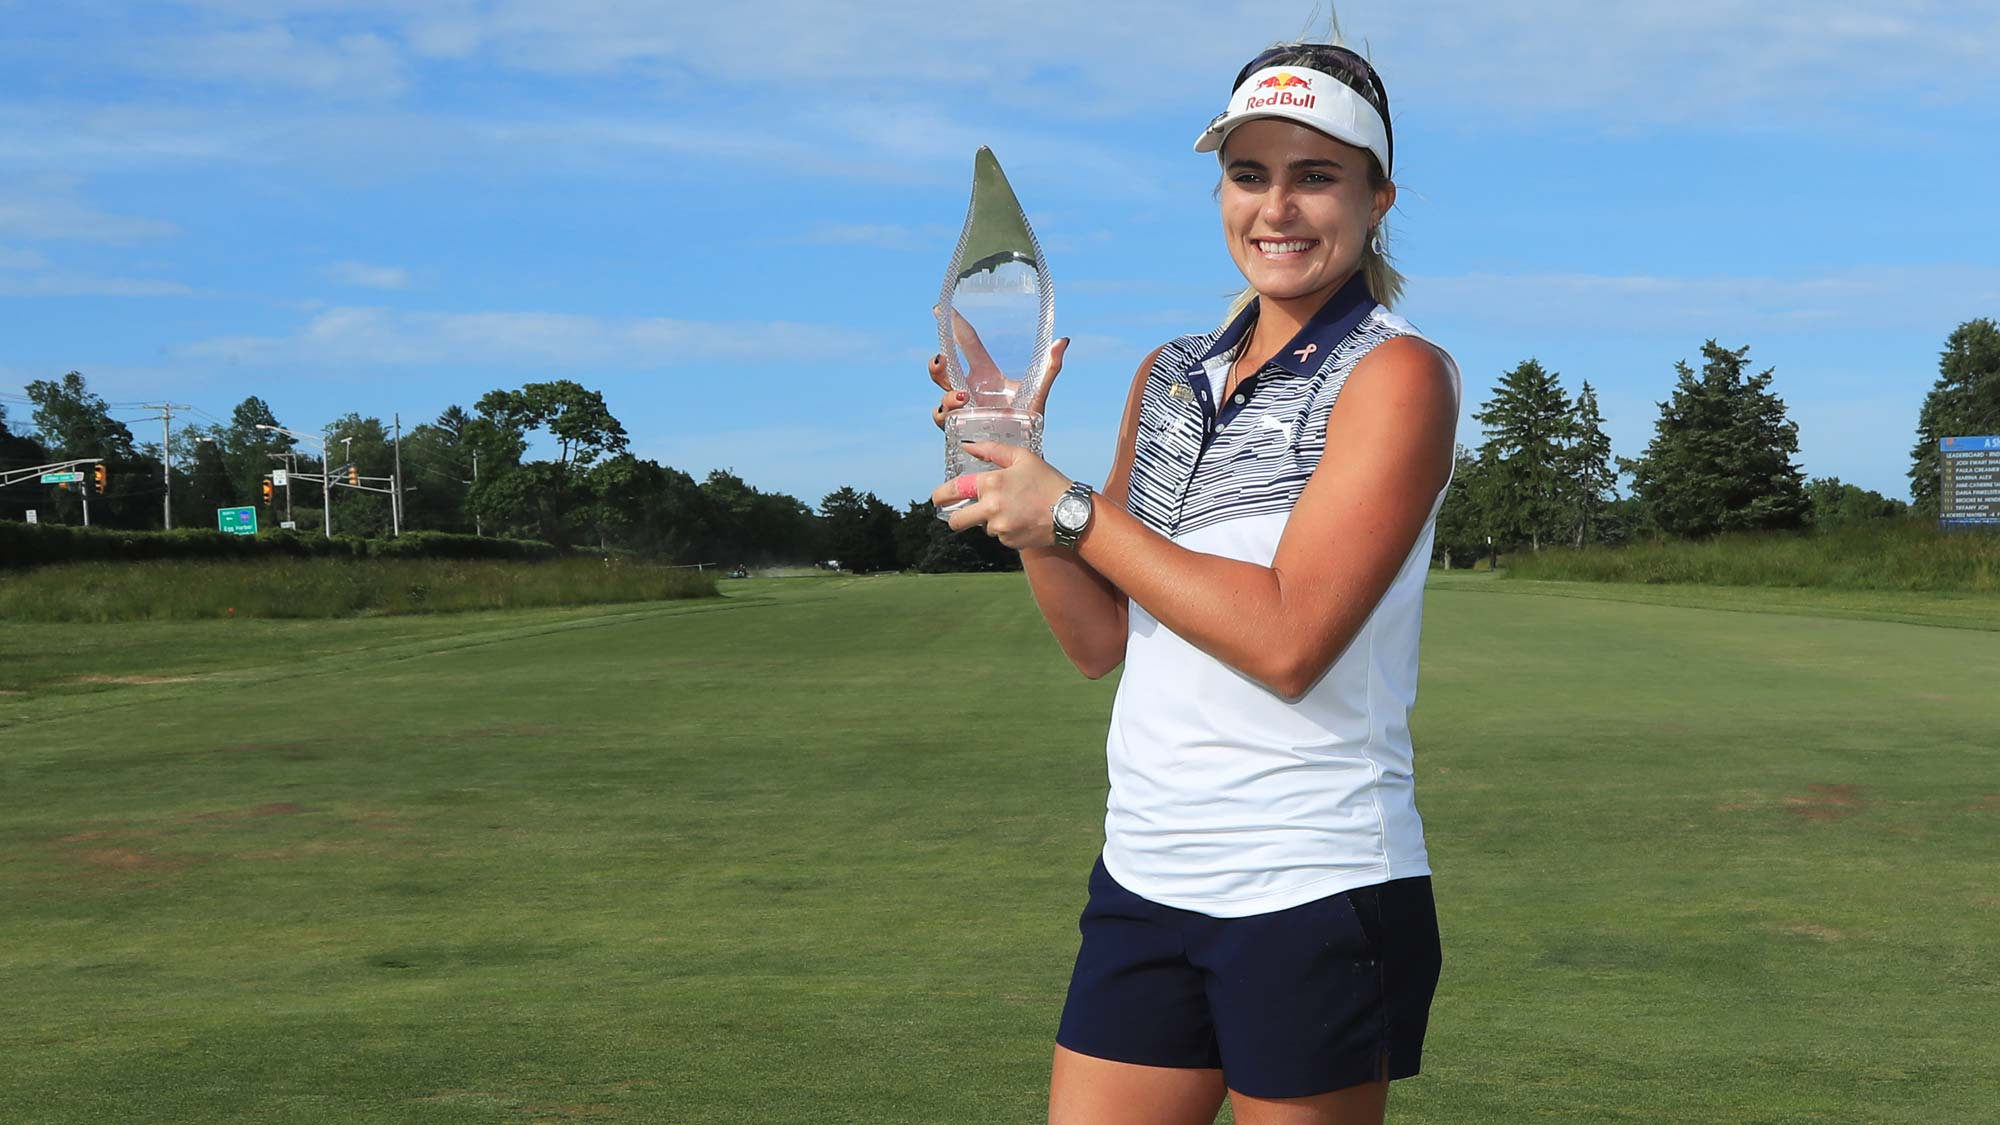 Lexi Thompson holds the championship trophy after winning the ShopRite LPGA Classic presented by Acer